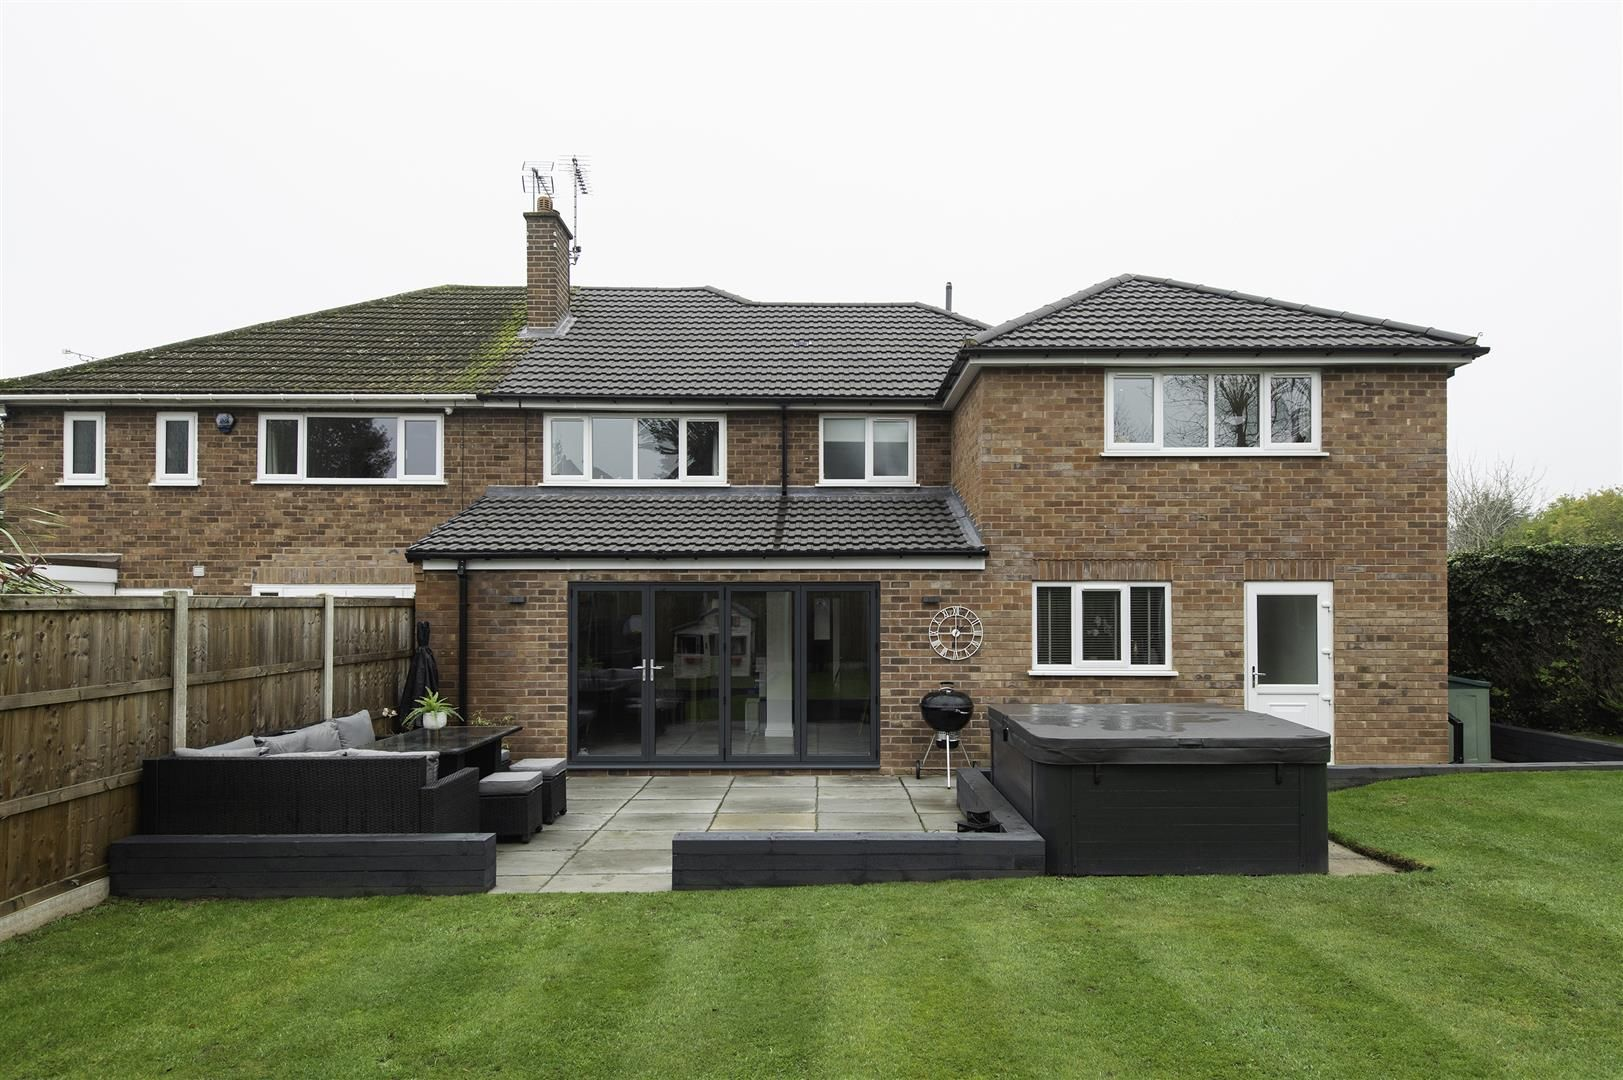 4 bed semi-detached for sale 41